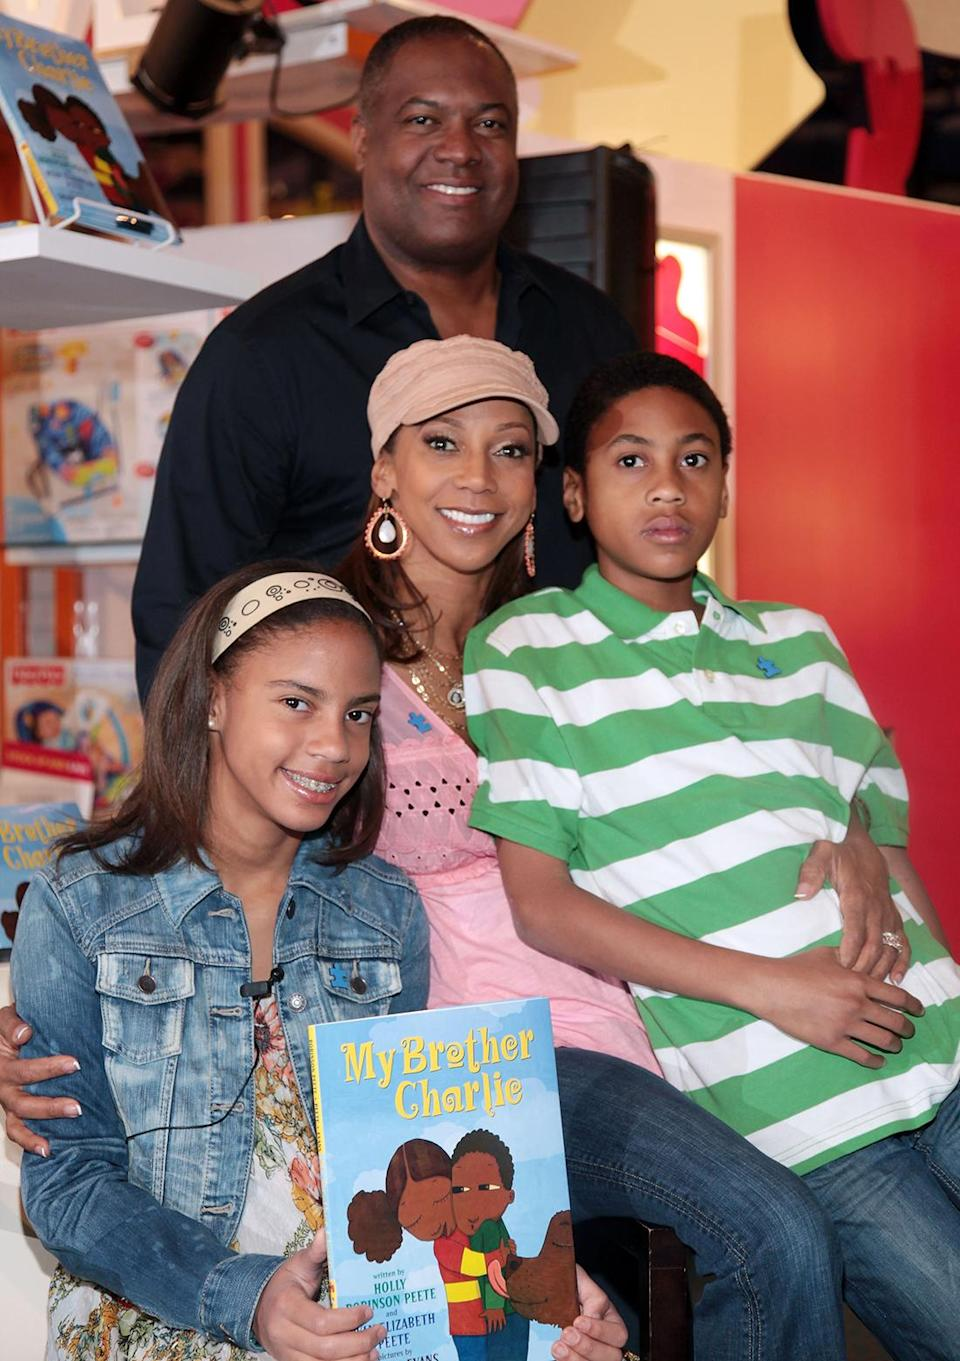 """Ryan Elizabeth Peete, Holly Robinson Peete, Rodney Peete, and Rodney Jackson """"R.J."""" Peete promote """"My Brother Charlie"""" and """"Not My Boy"""" at Toys """"R"""" Us on April 3, 2010, in New York City. (Photo by Astrid Stawiarz/Getty Images)"""